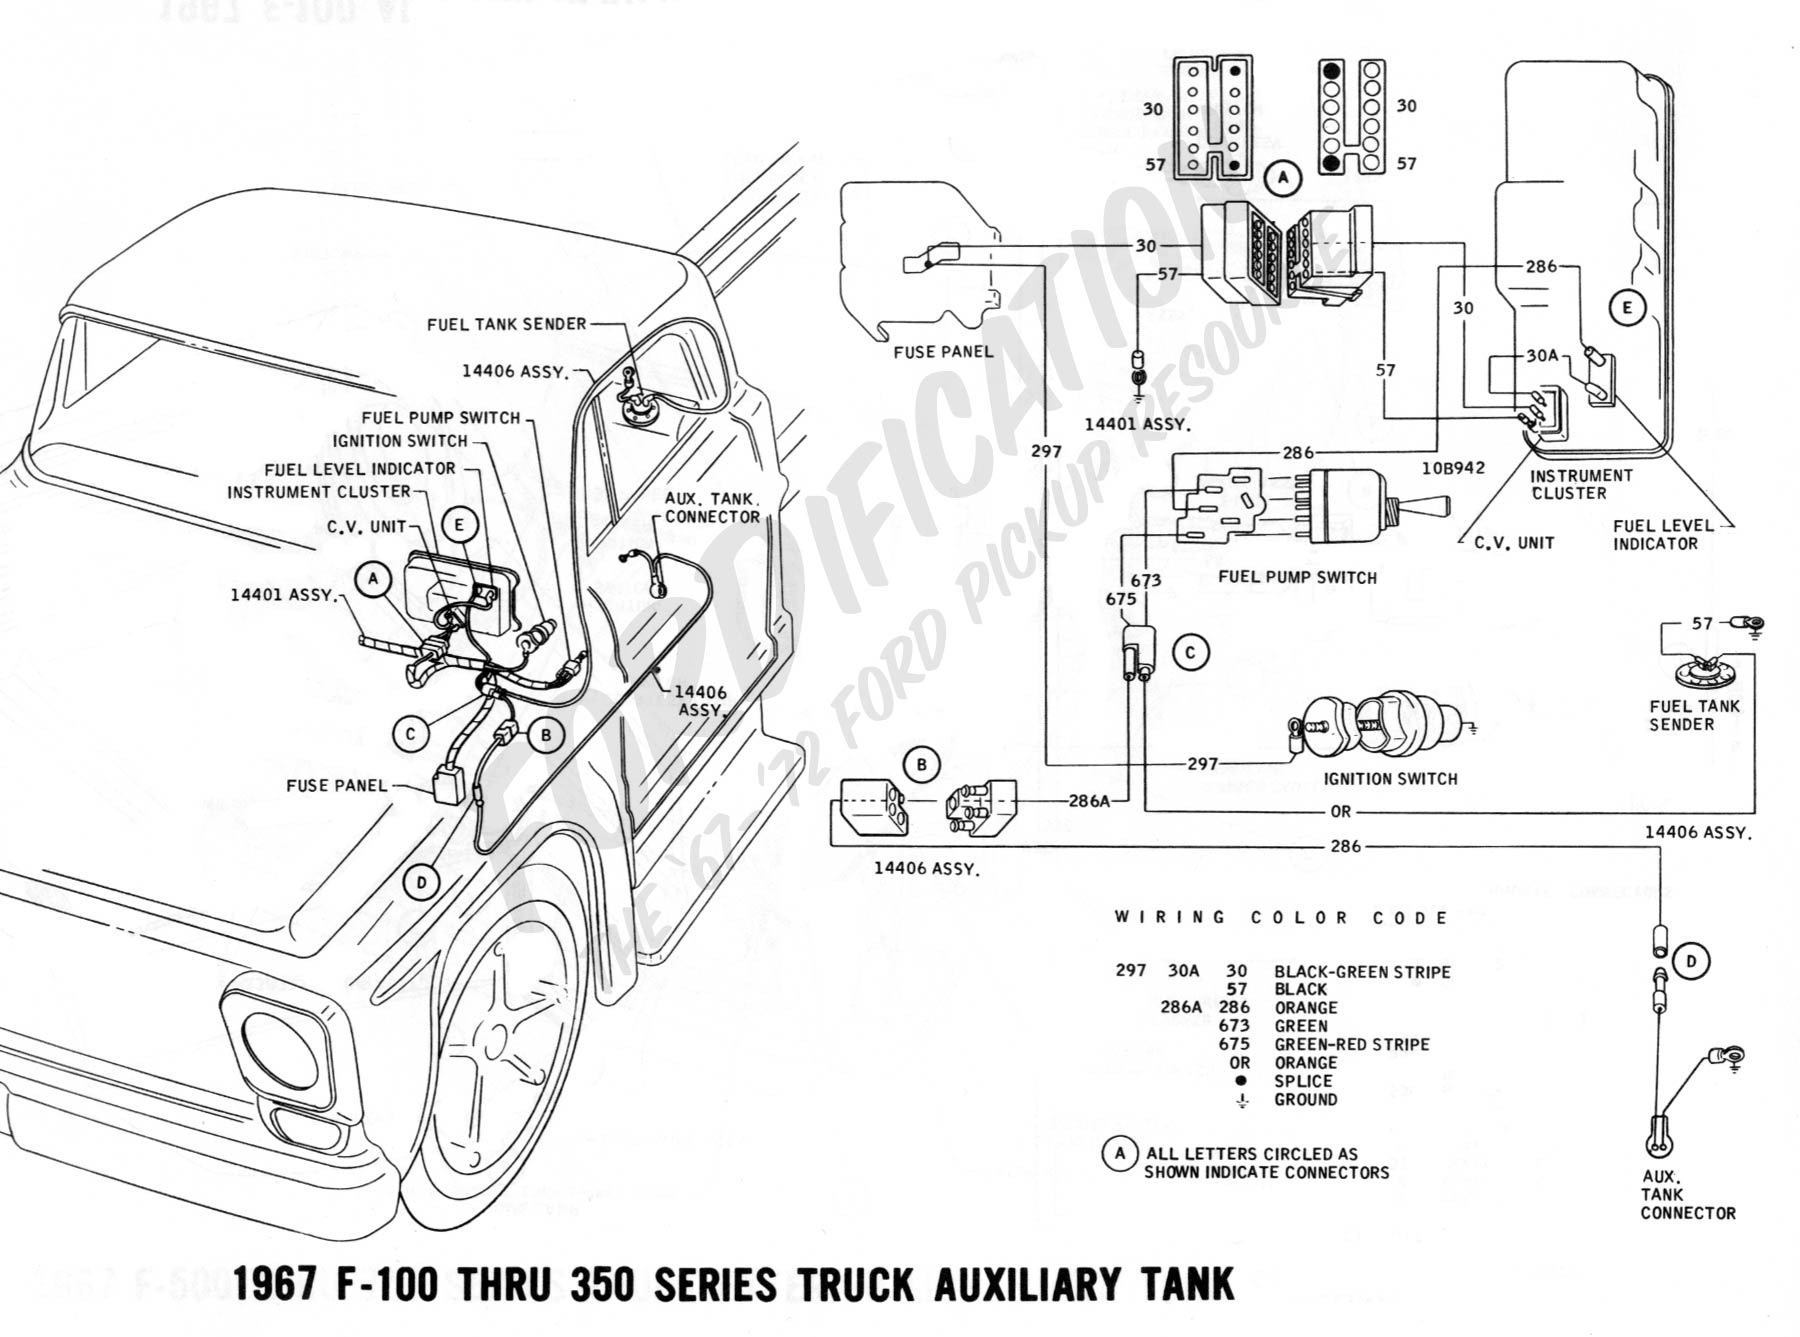 Explorer Rear Wiper Motor Wiring Diagram 1990 Library 1967 Corvette Schematic F 100 Thru 350 Auxiliary Fuel Tank